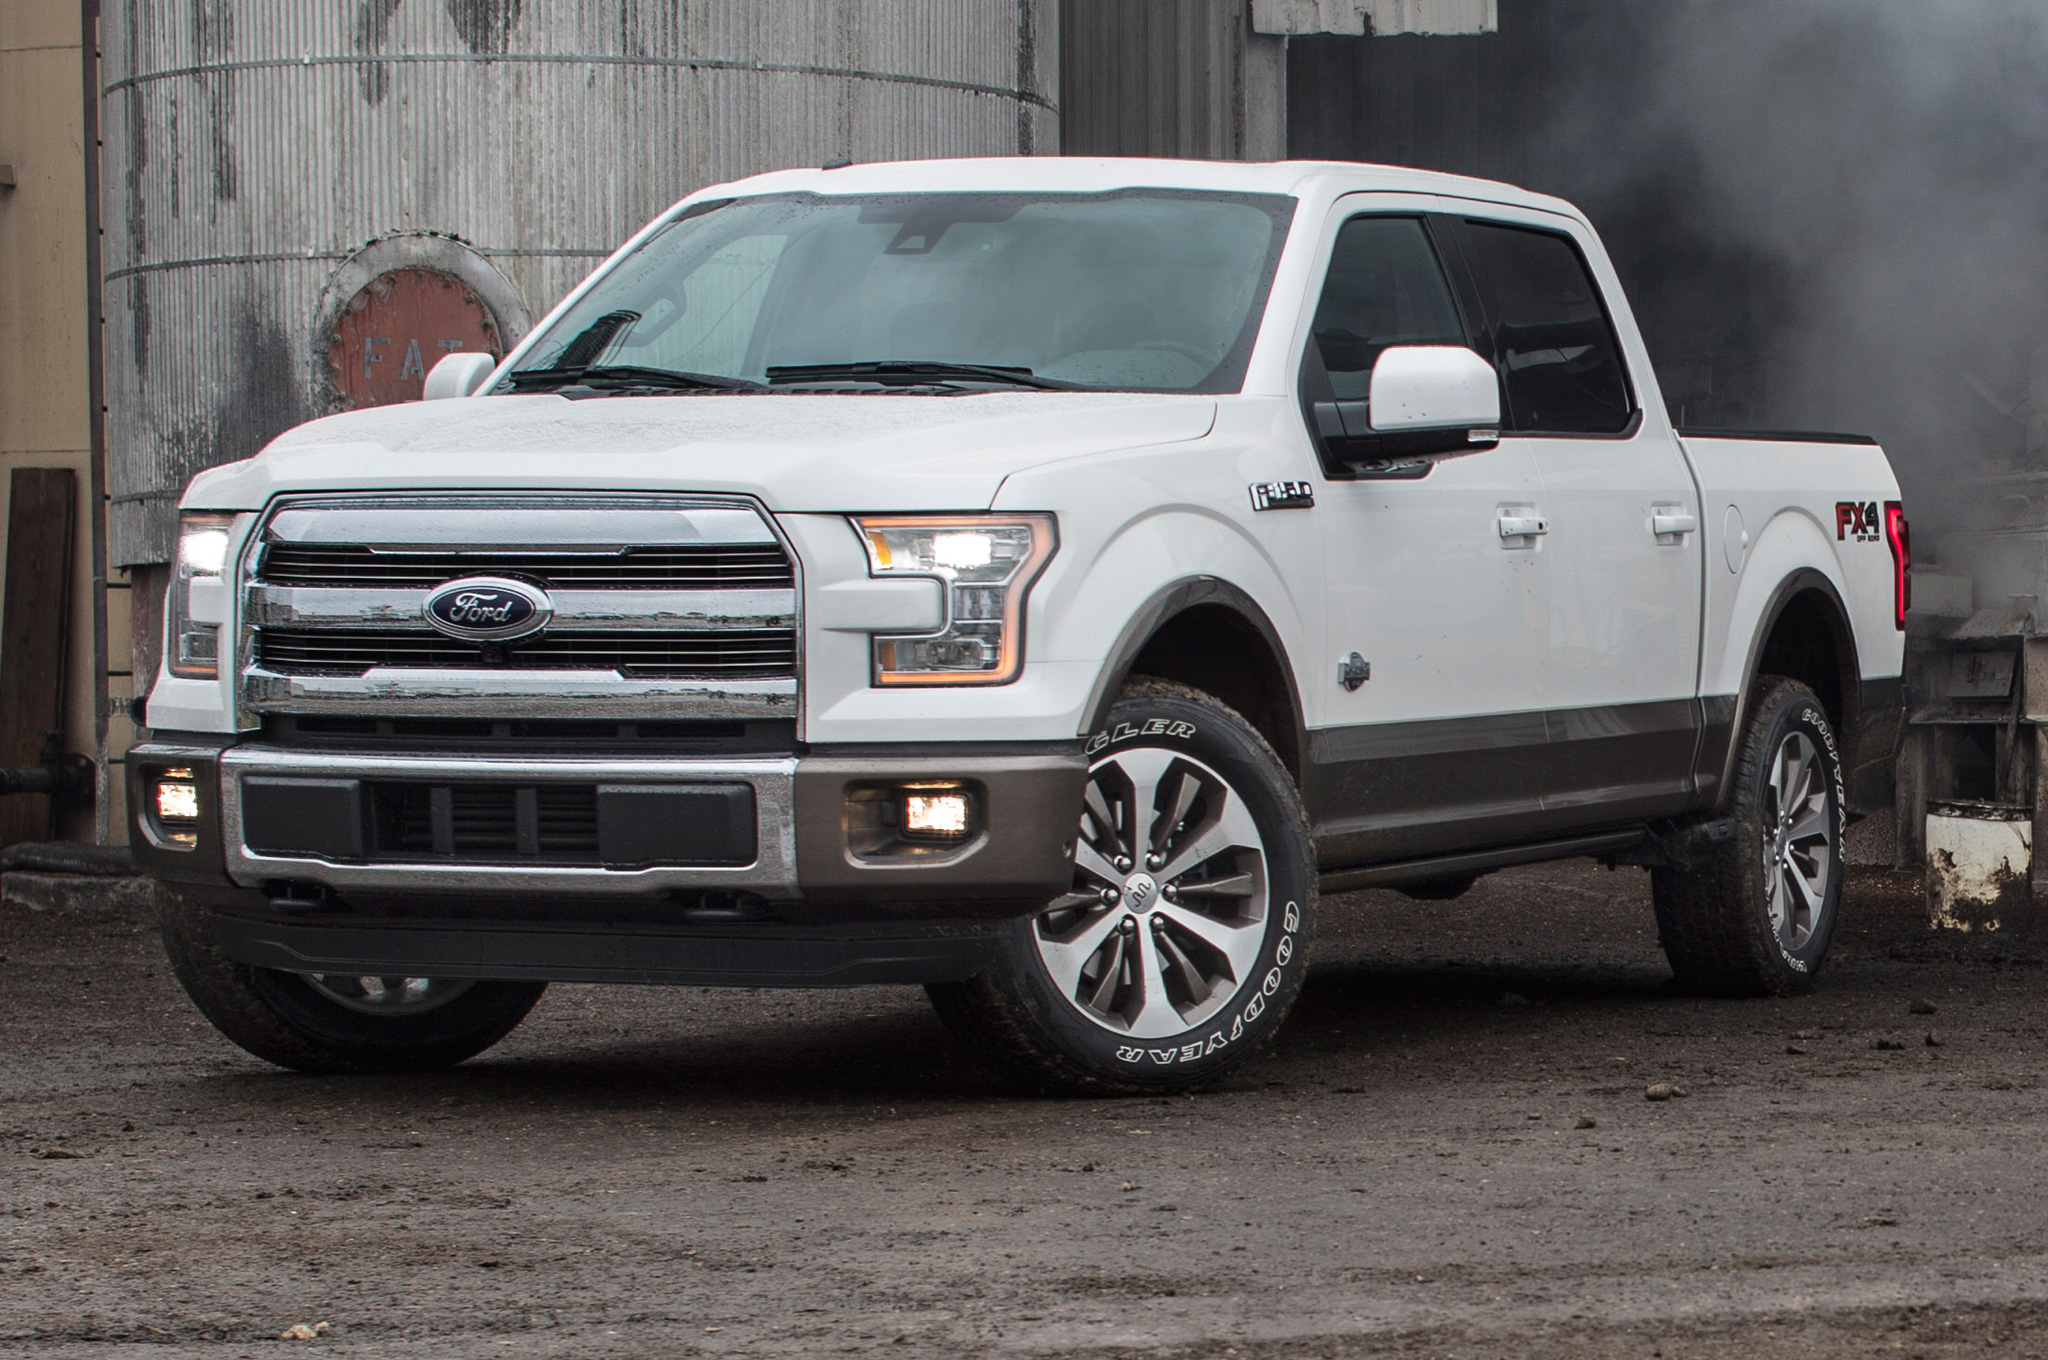 Article Power To The People Wards Auto Ranks Its 10 Best 2004 Ford F 150 King Ranch 4x4 2015 Motor Trend Perspective